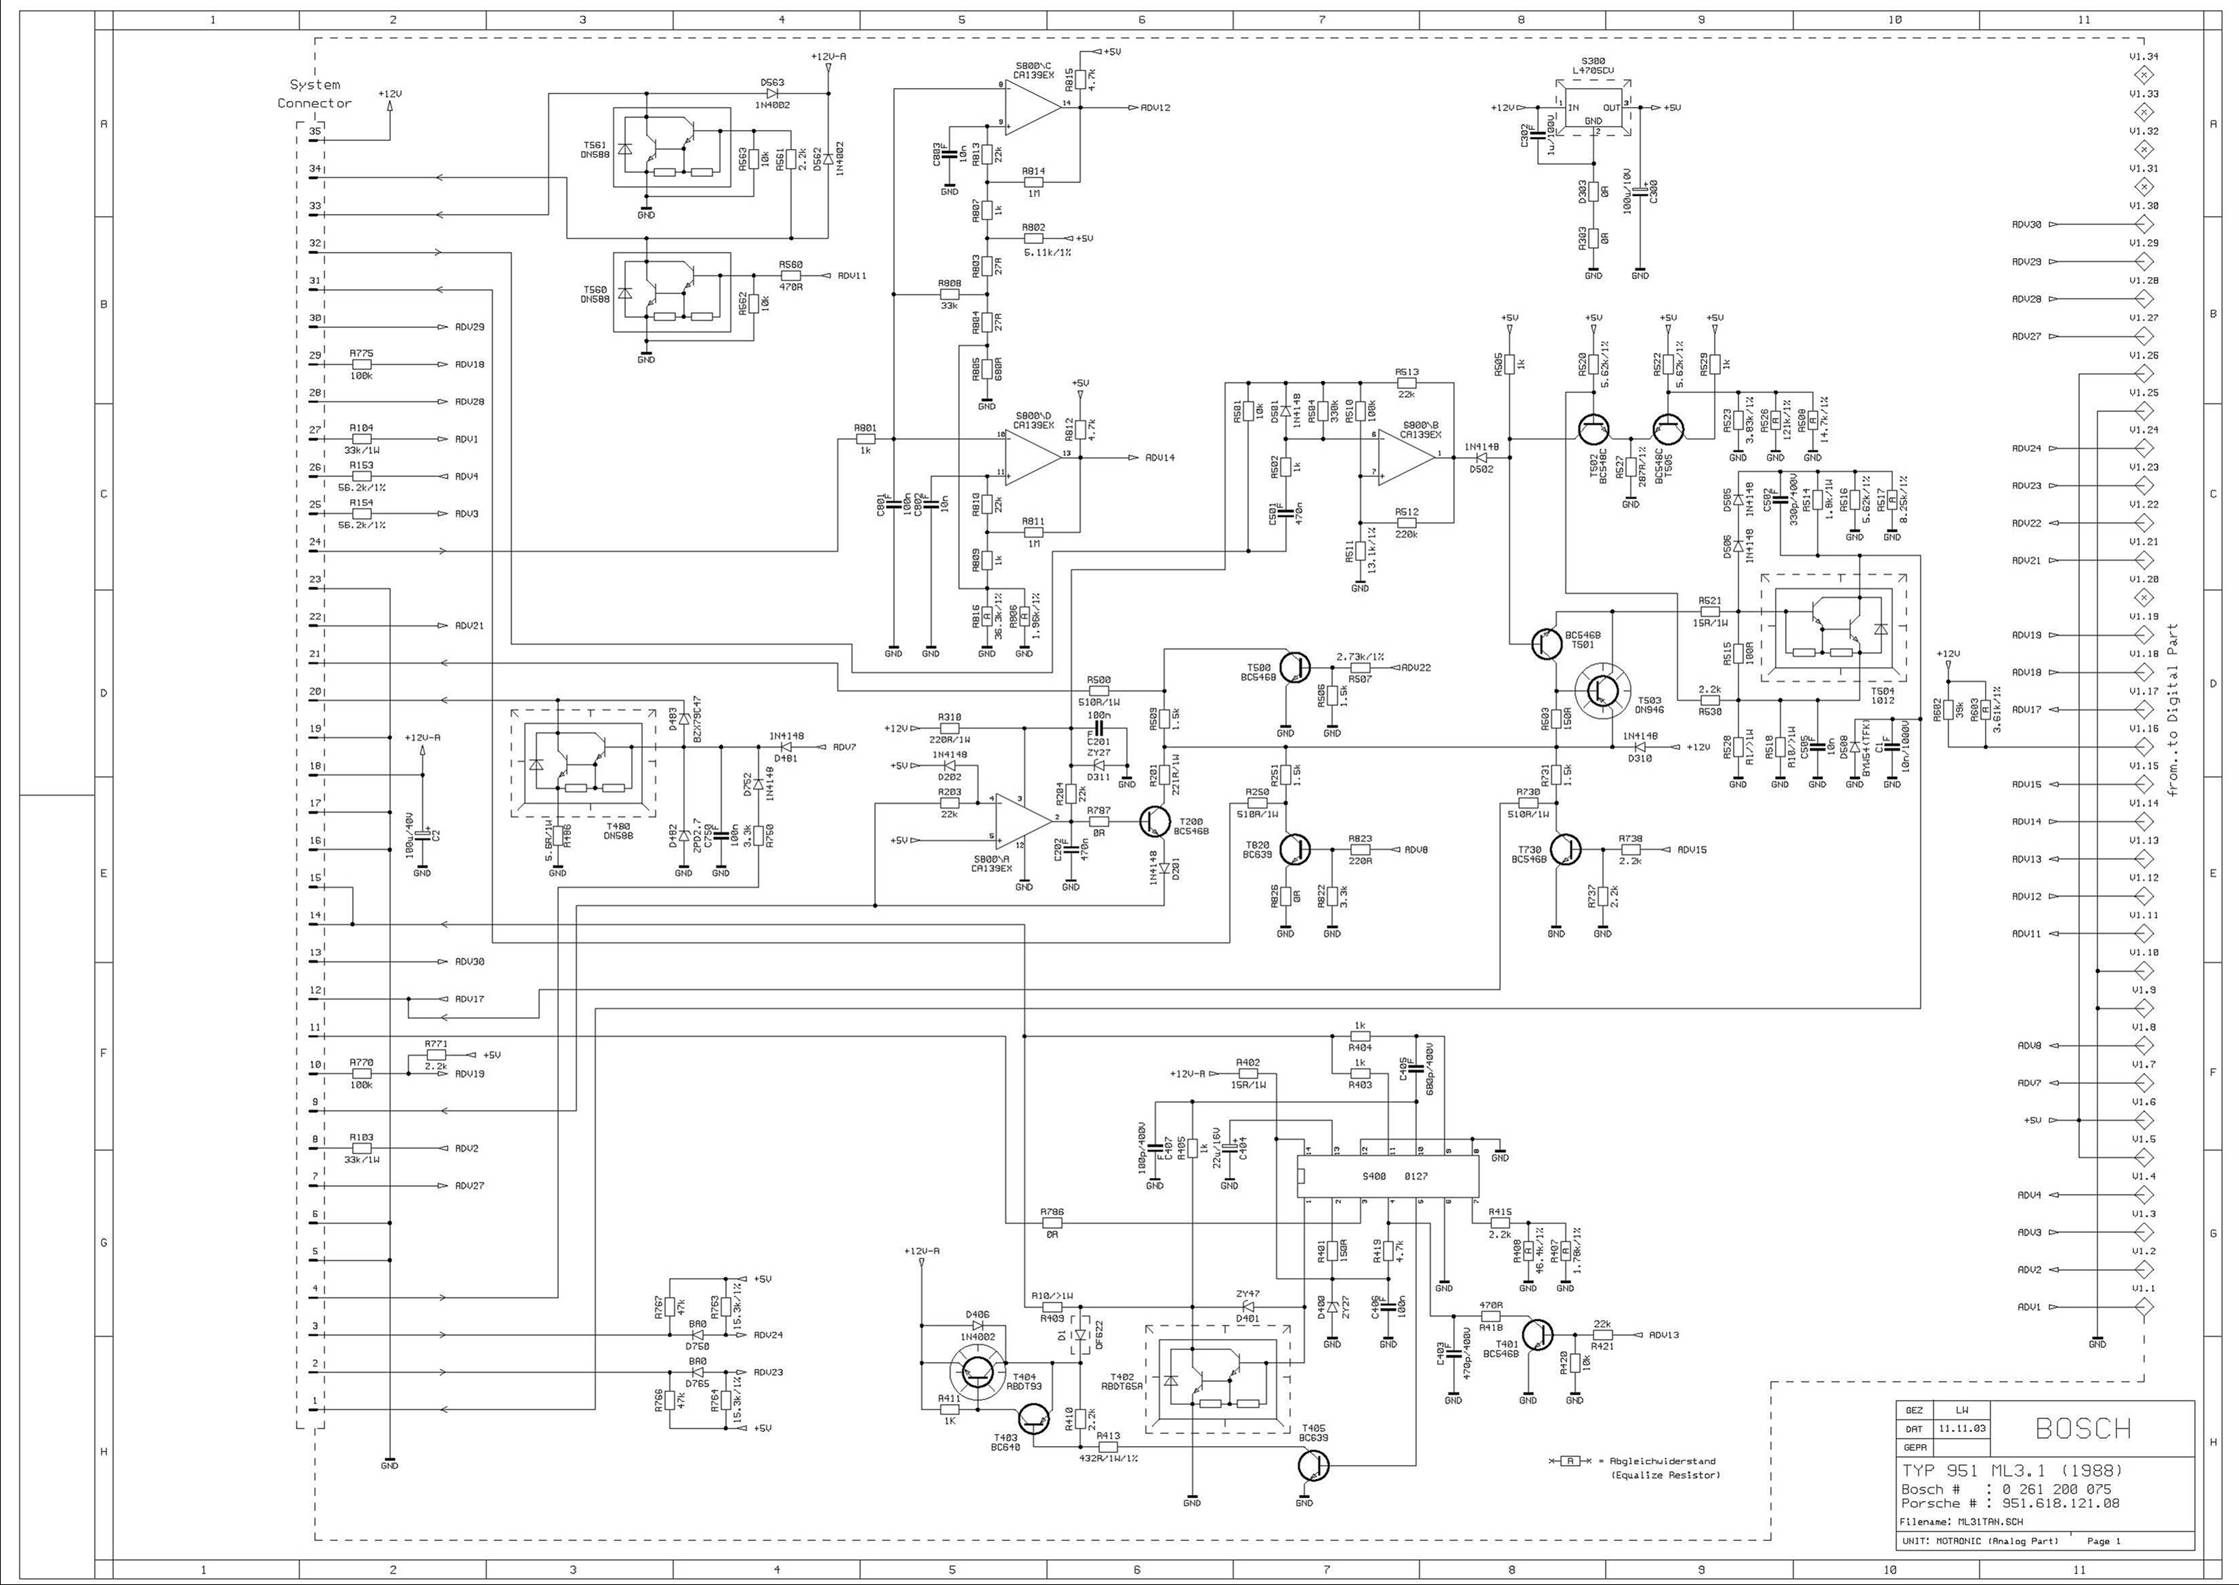 dme wiring diagram dme wiring diagram 944 turbo